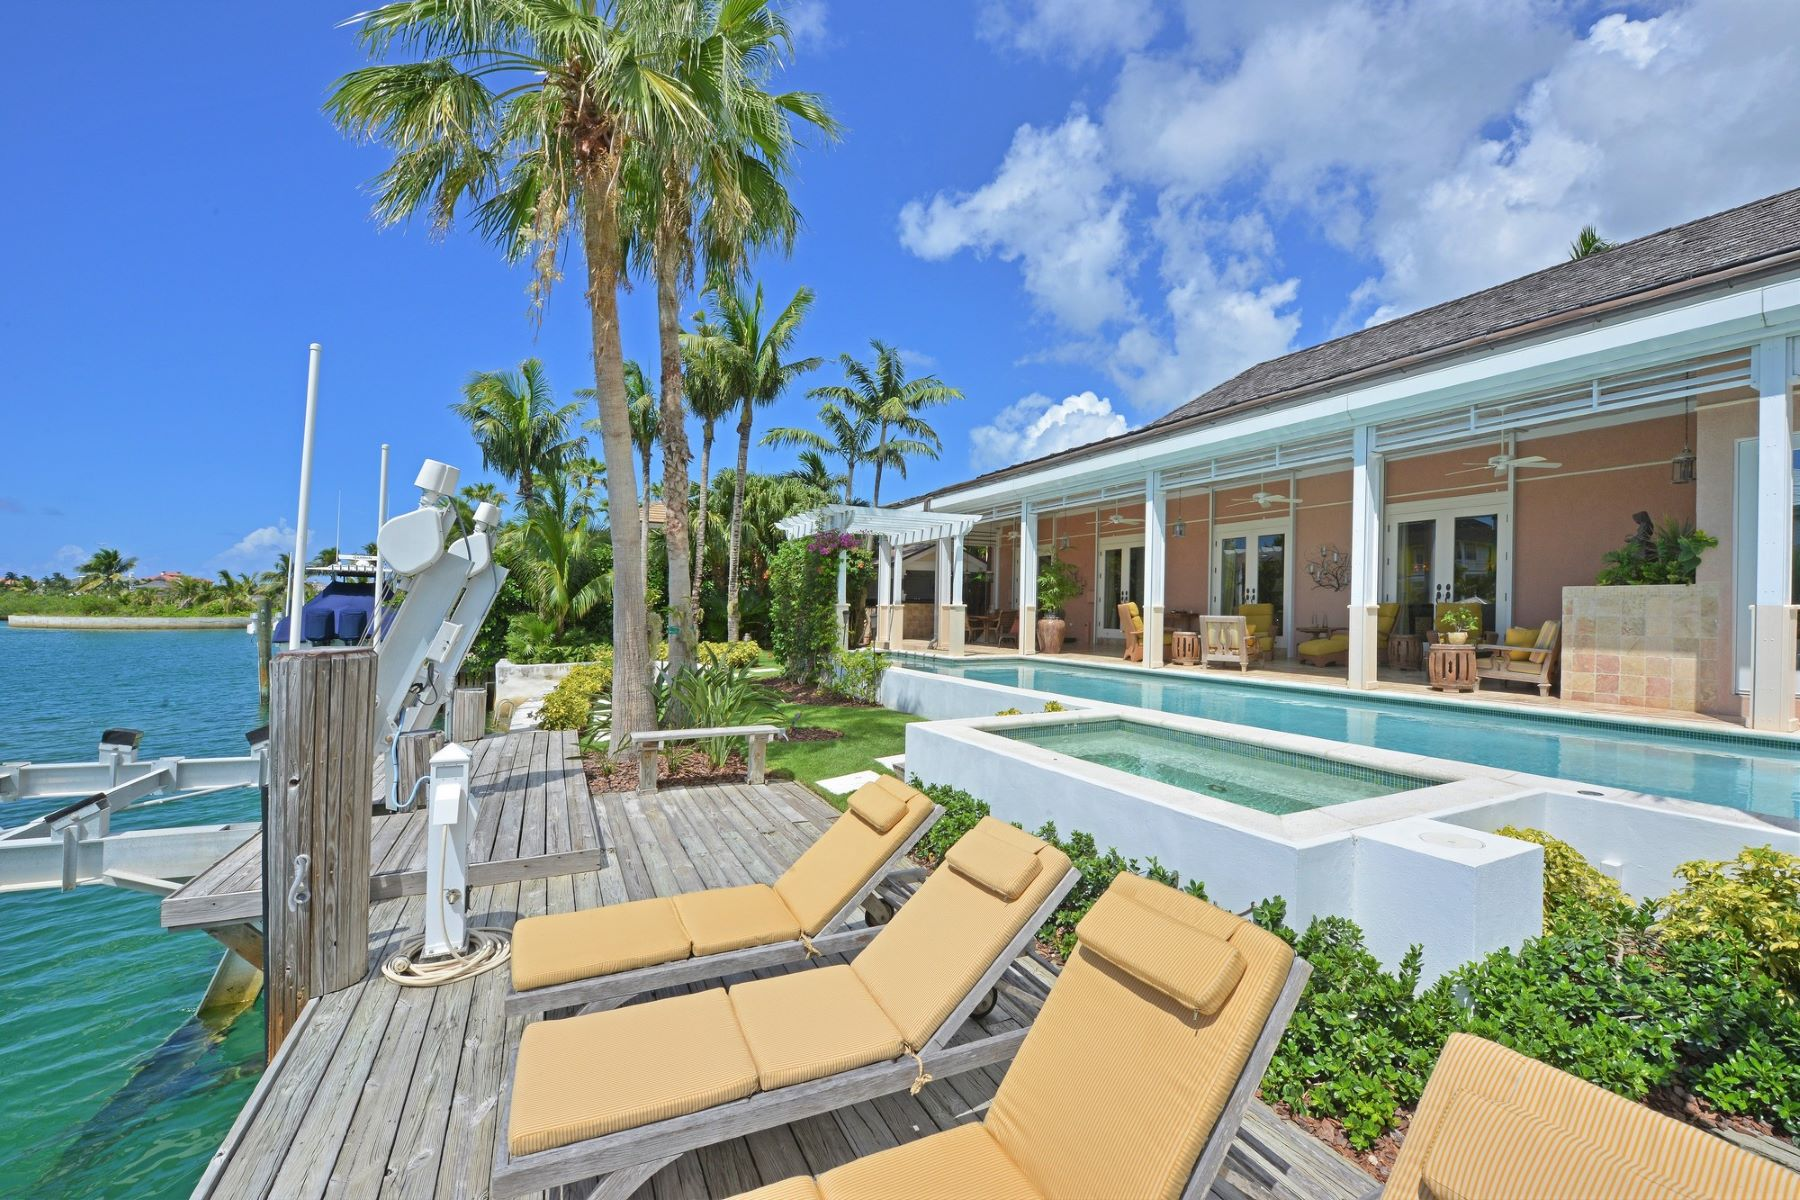 Single Family Home for Sale at 8 Beach Island Islands At Old Fort Bay, Old Fort Bay, Nassau And Paradise Island Bahamas